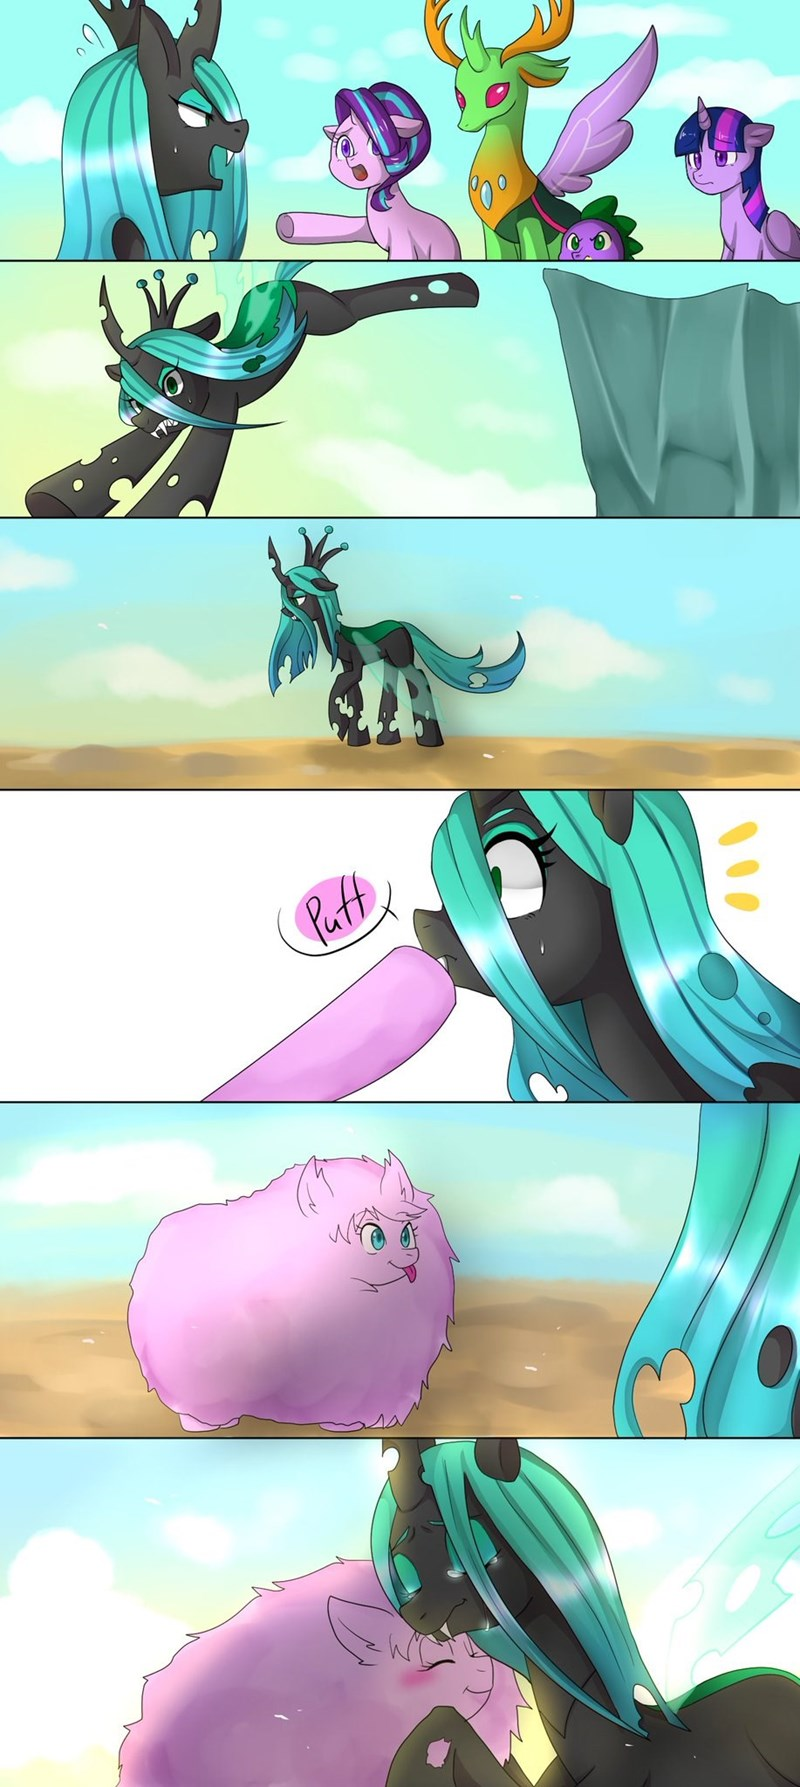 fluffle puff spike thorax starlight glimmer twilight sparkle chrysalis comic to where and back again changelings - 8988014336